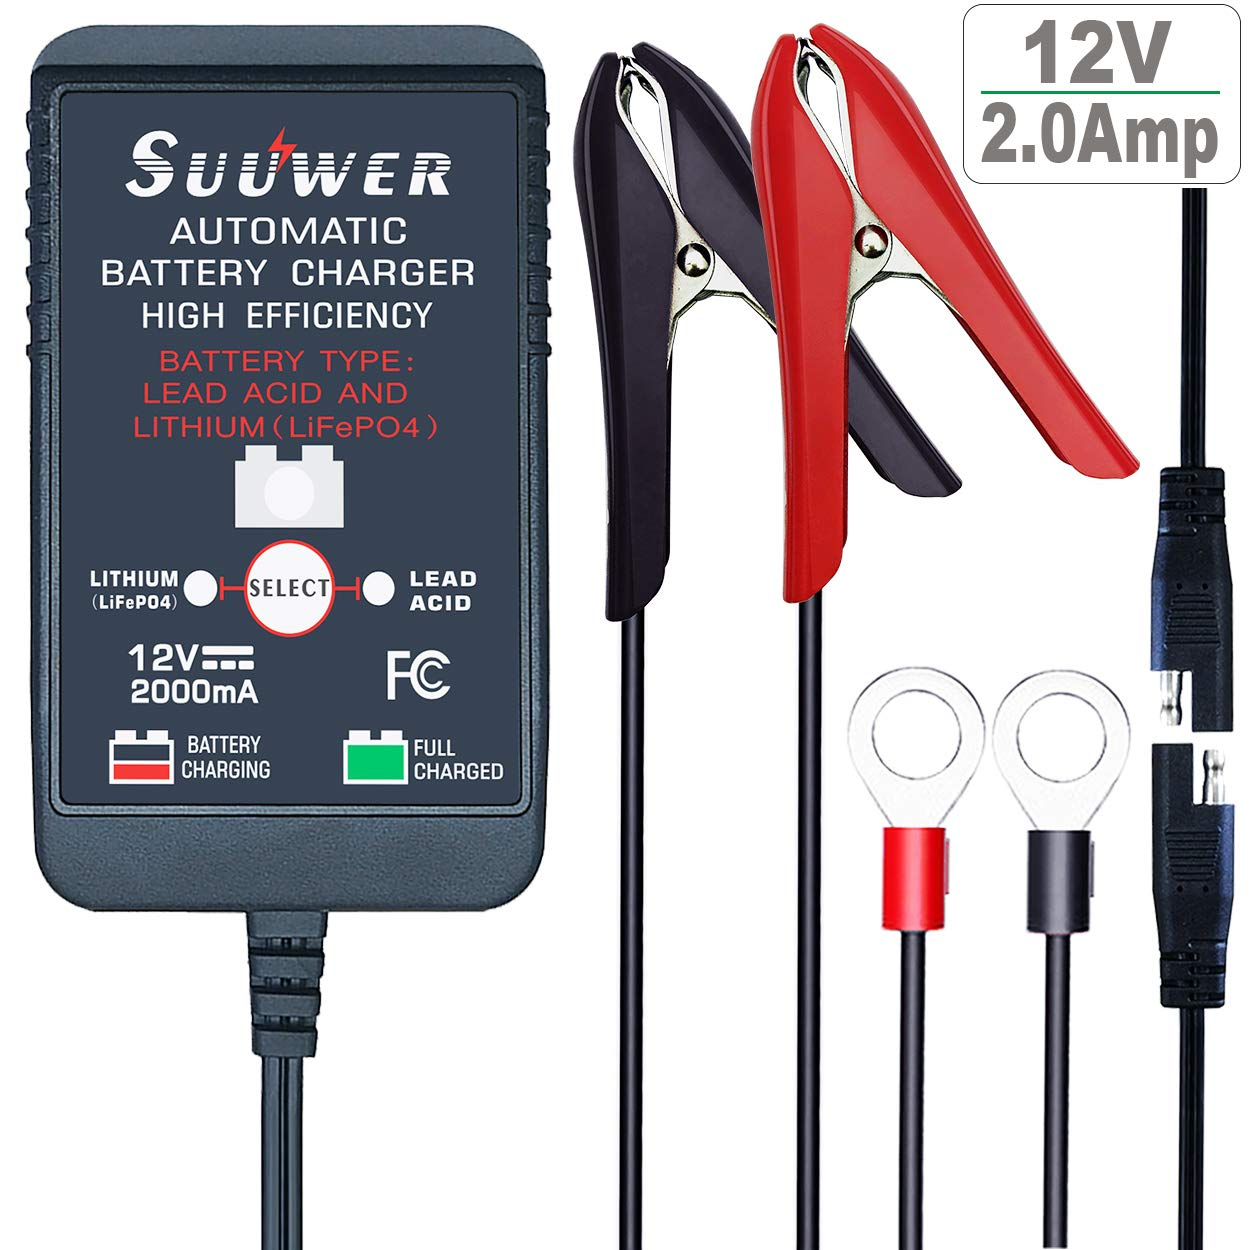 SUUWER 12V 2A Battery Charger is a Smart Trickle Charger Maintain. Selectable for Lead Acid, SLA, AGM, Gel Cell, iGel, LTV or Lithium (LiFePO4) Batteries Charging.